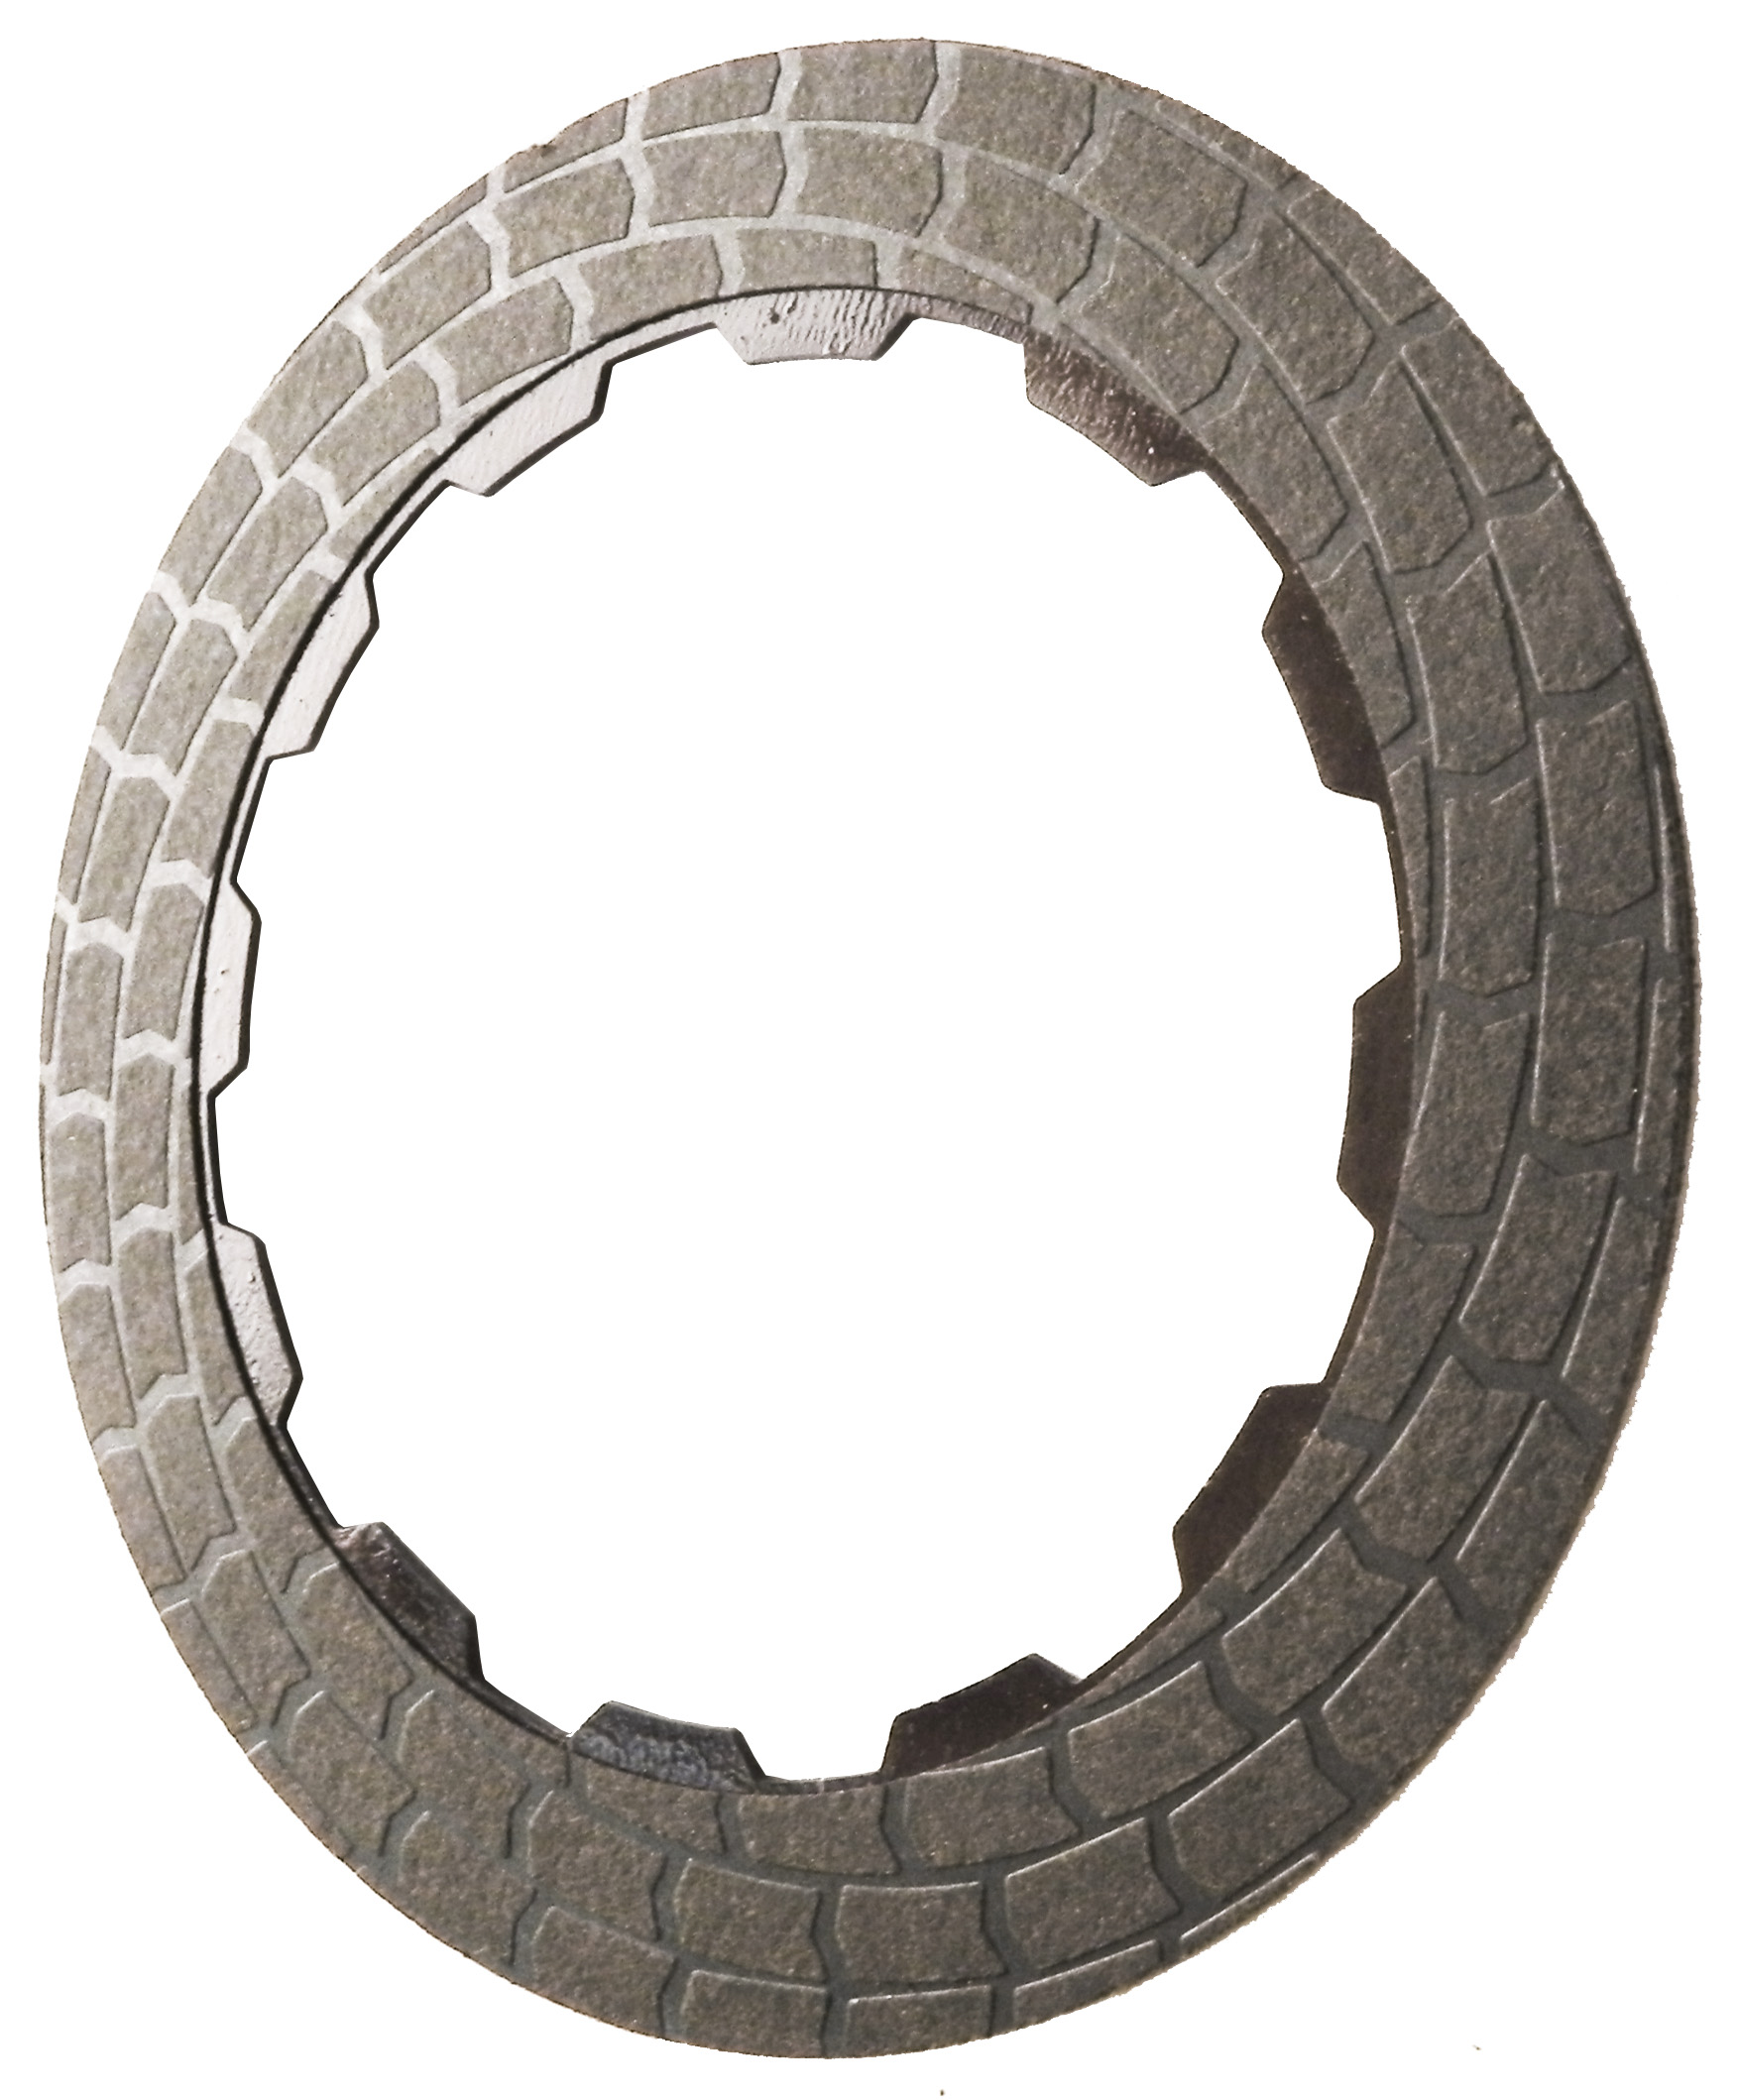 RH561317 | 1998-ON Friction Clutch Plate (HT) Hybrid Technology 3rd Clutch Proprietary High Energy (HT)